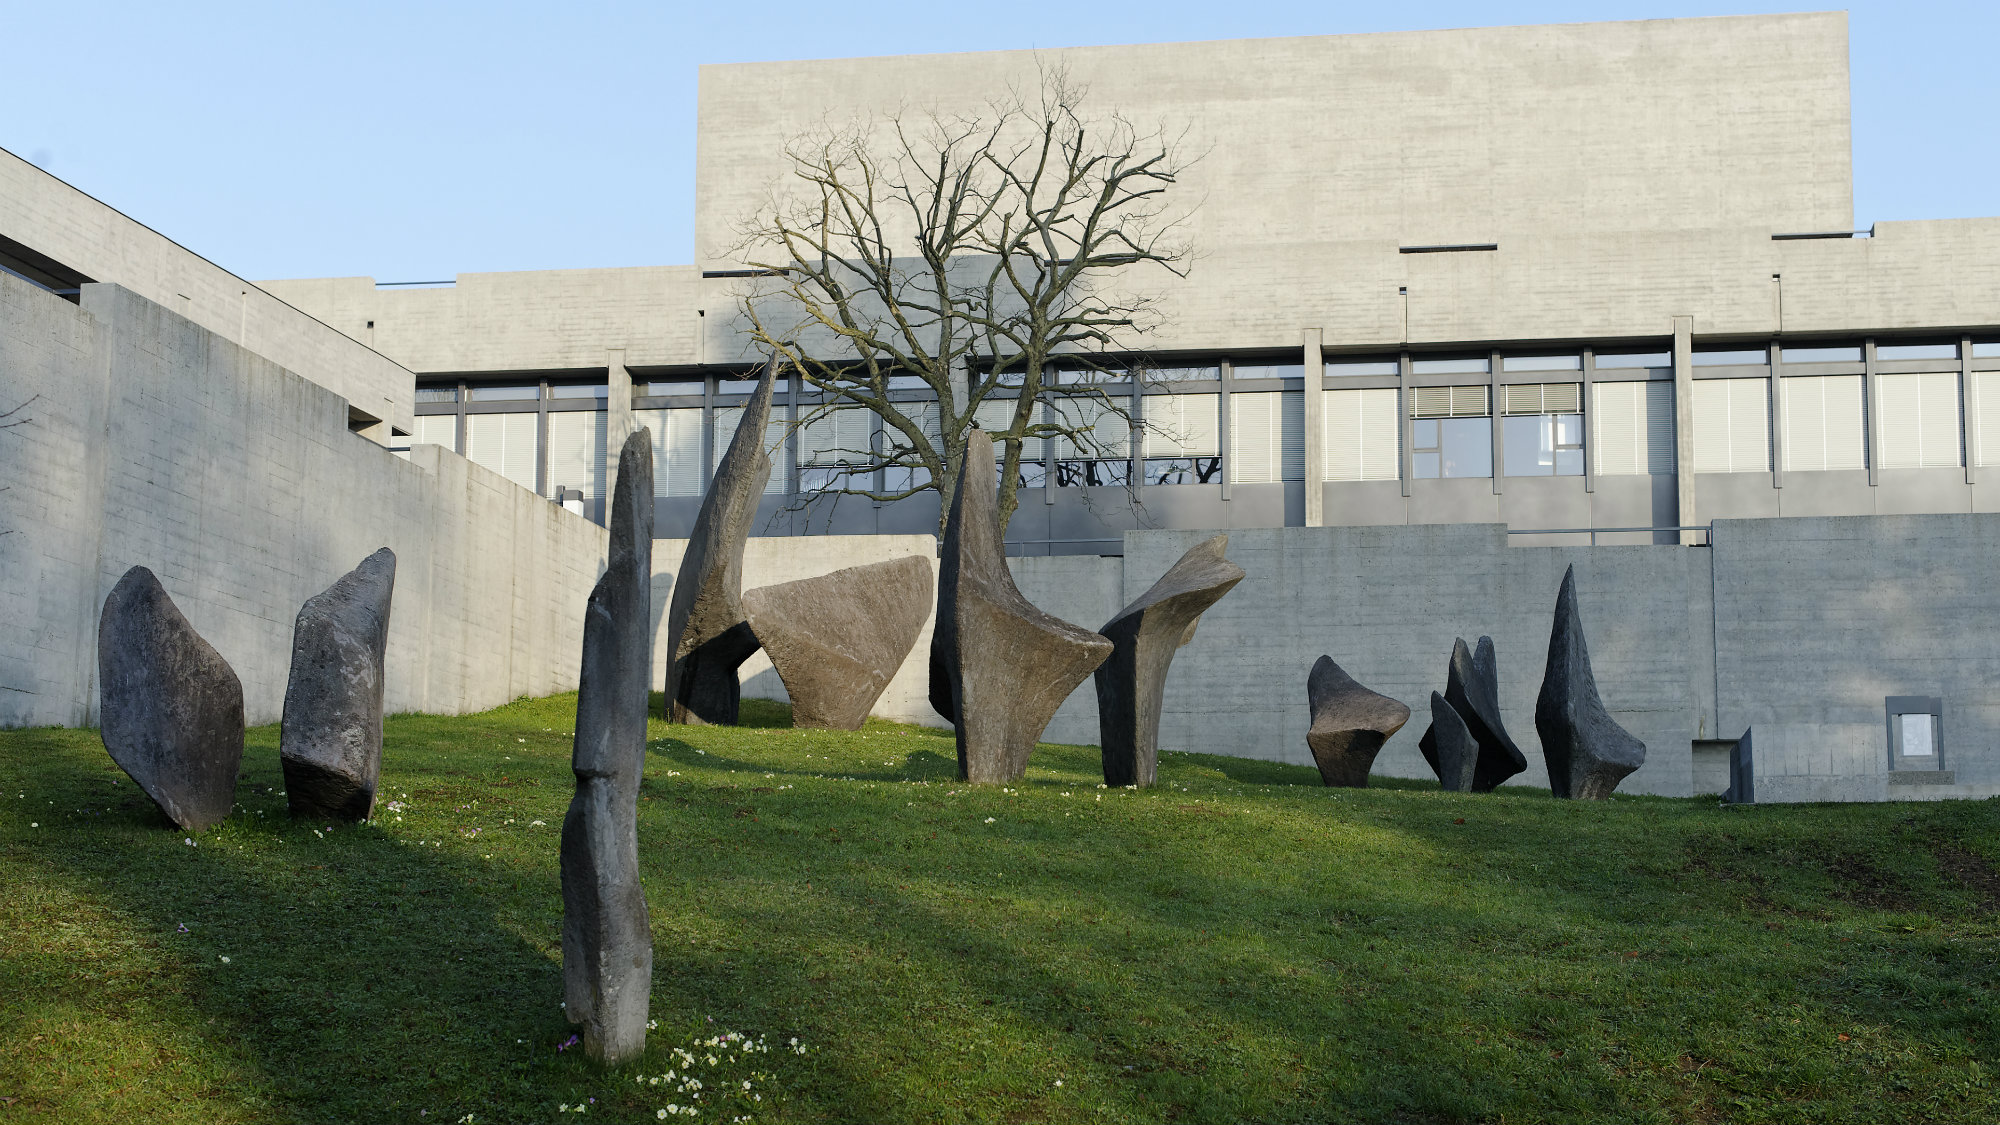 Art by Alicia Penalba, untitled, concrete, at the University of St.Gallen (HSG)